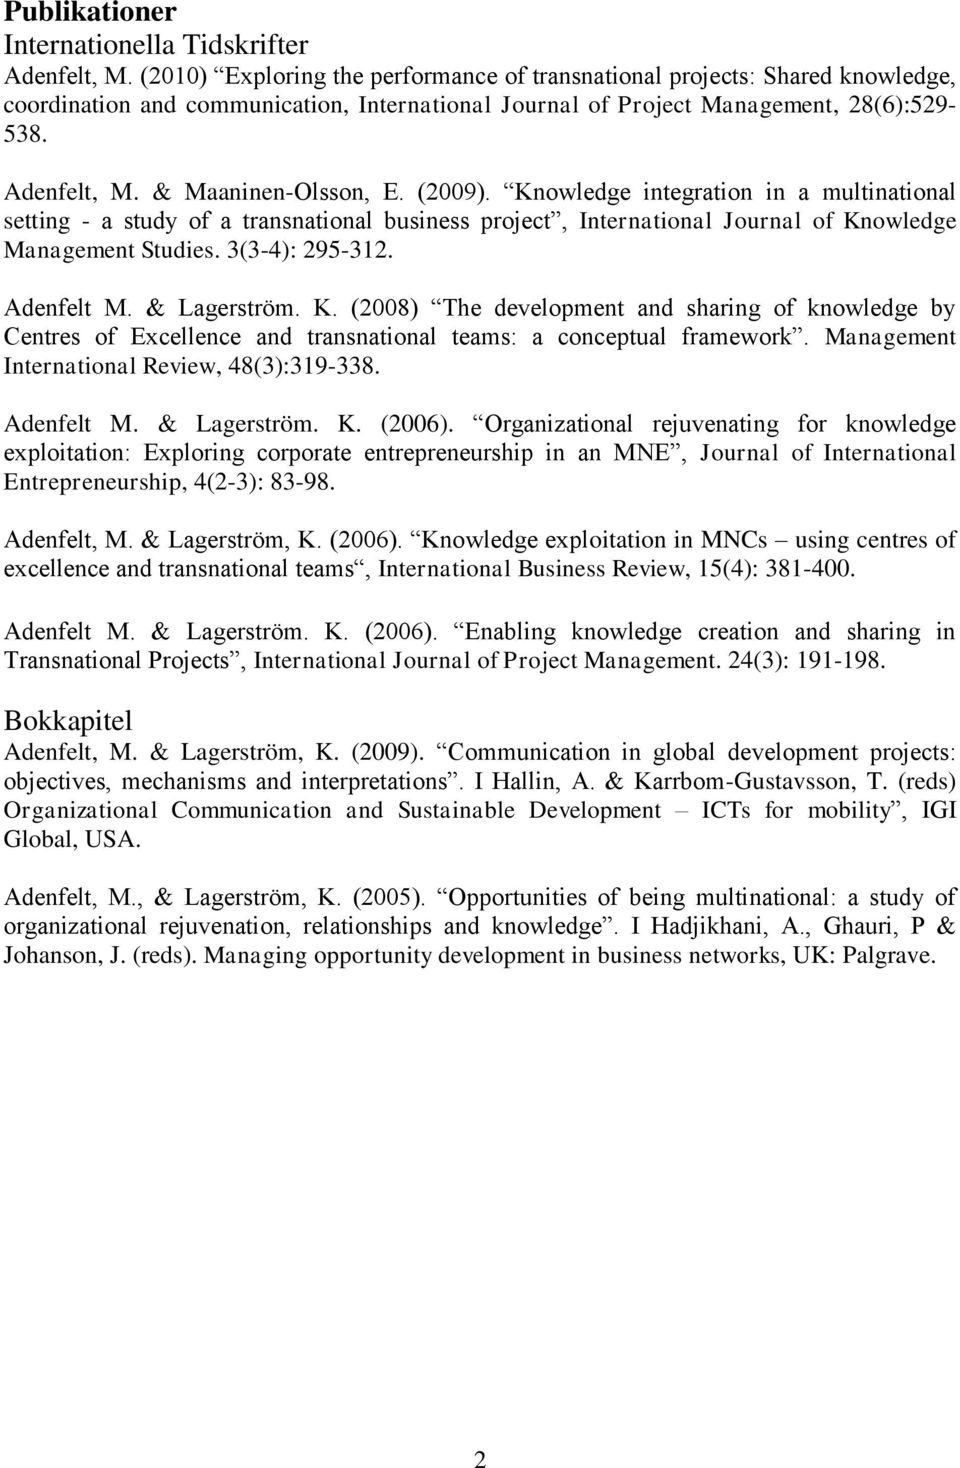 & Maaninen-Olsson, E. (2009). Knowledge integration in a multinational setting - a study of a transnational business project, International Journal of Knowledge Management Studies. 3(3-4): 295-312.